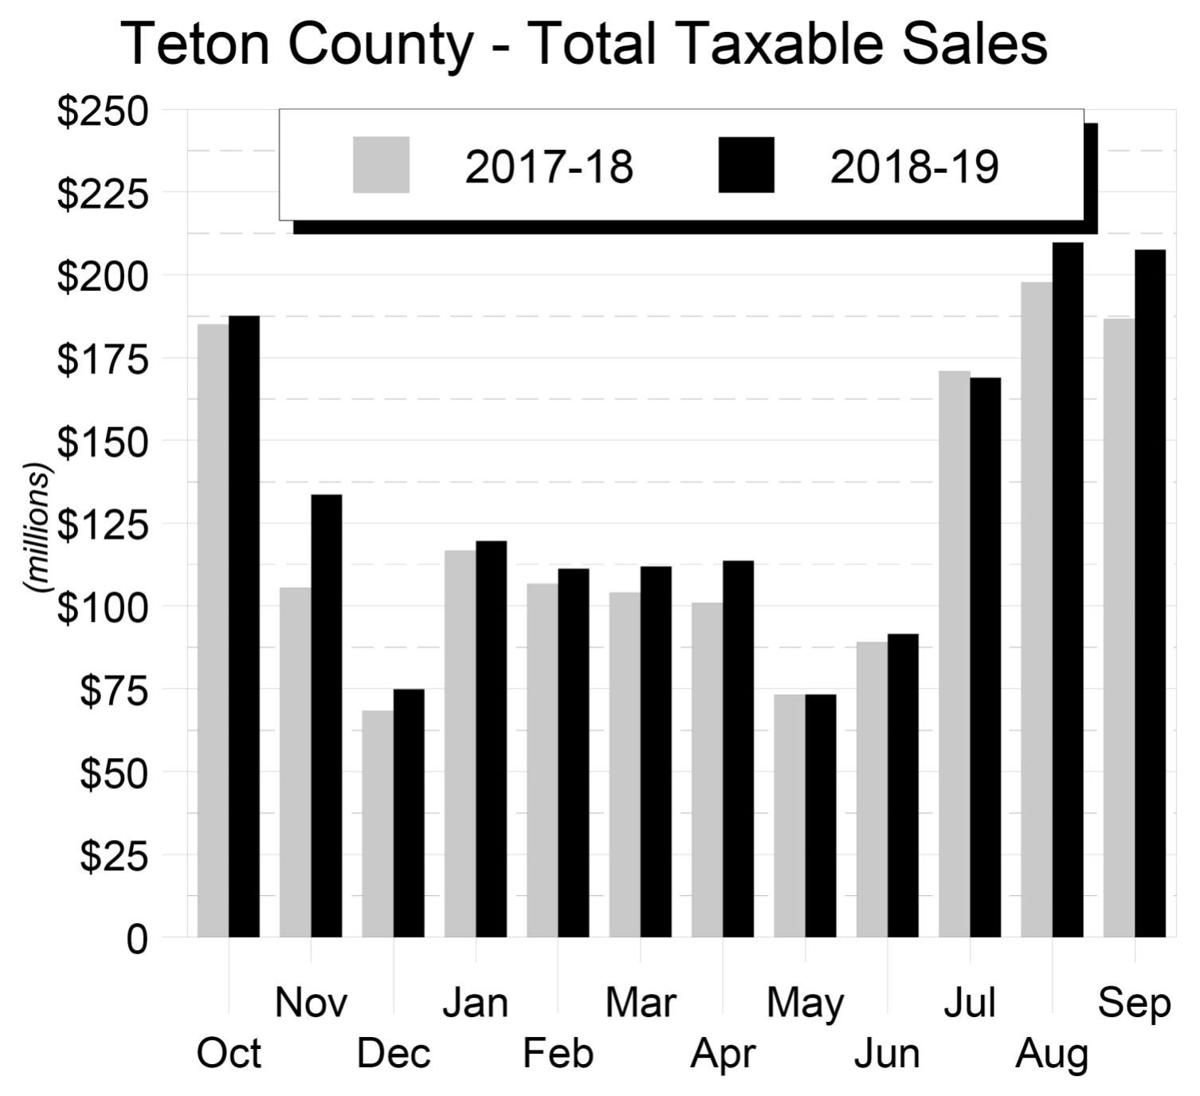 Total Taxable Sales